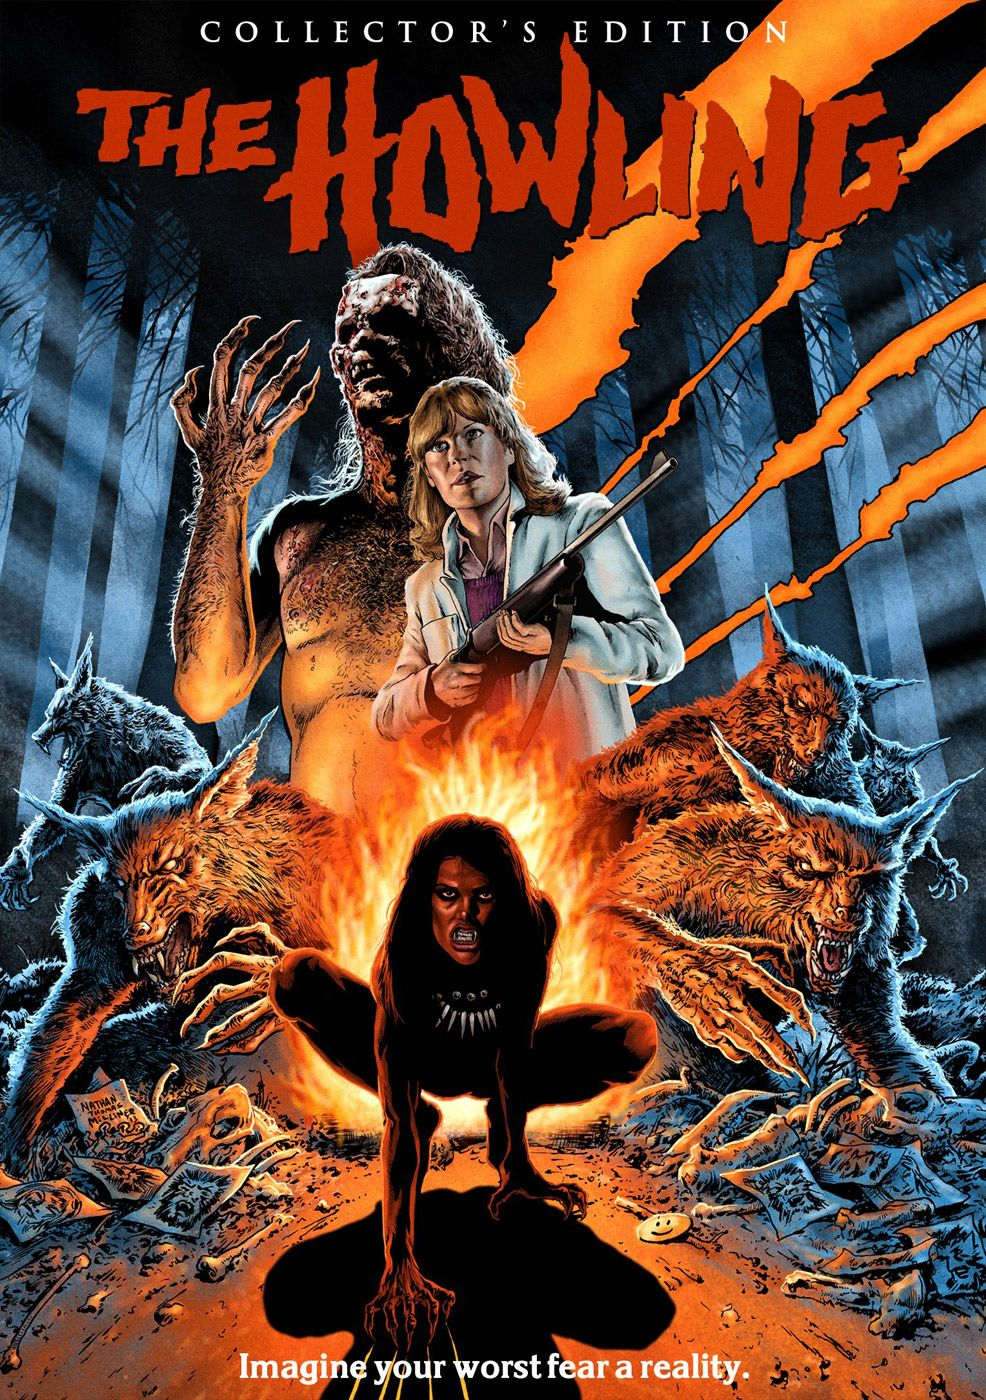 Howling Το Ουρλιαχτό (1981) The howling, Horror, Scary